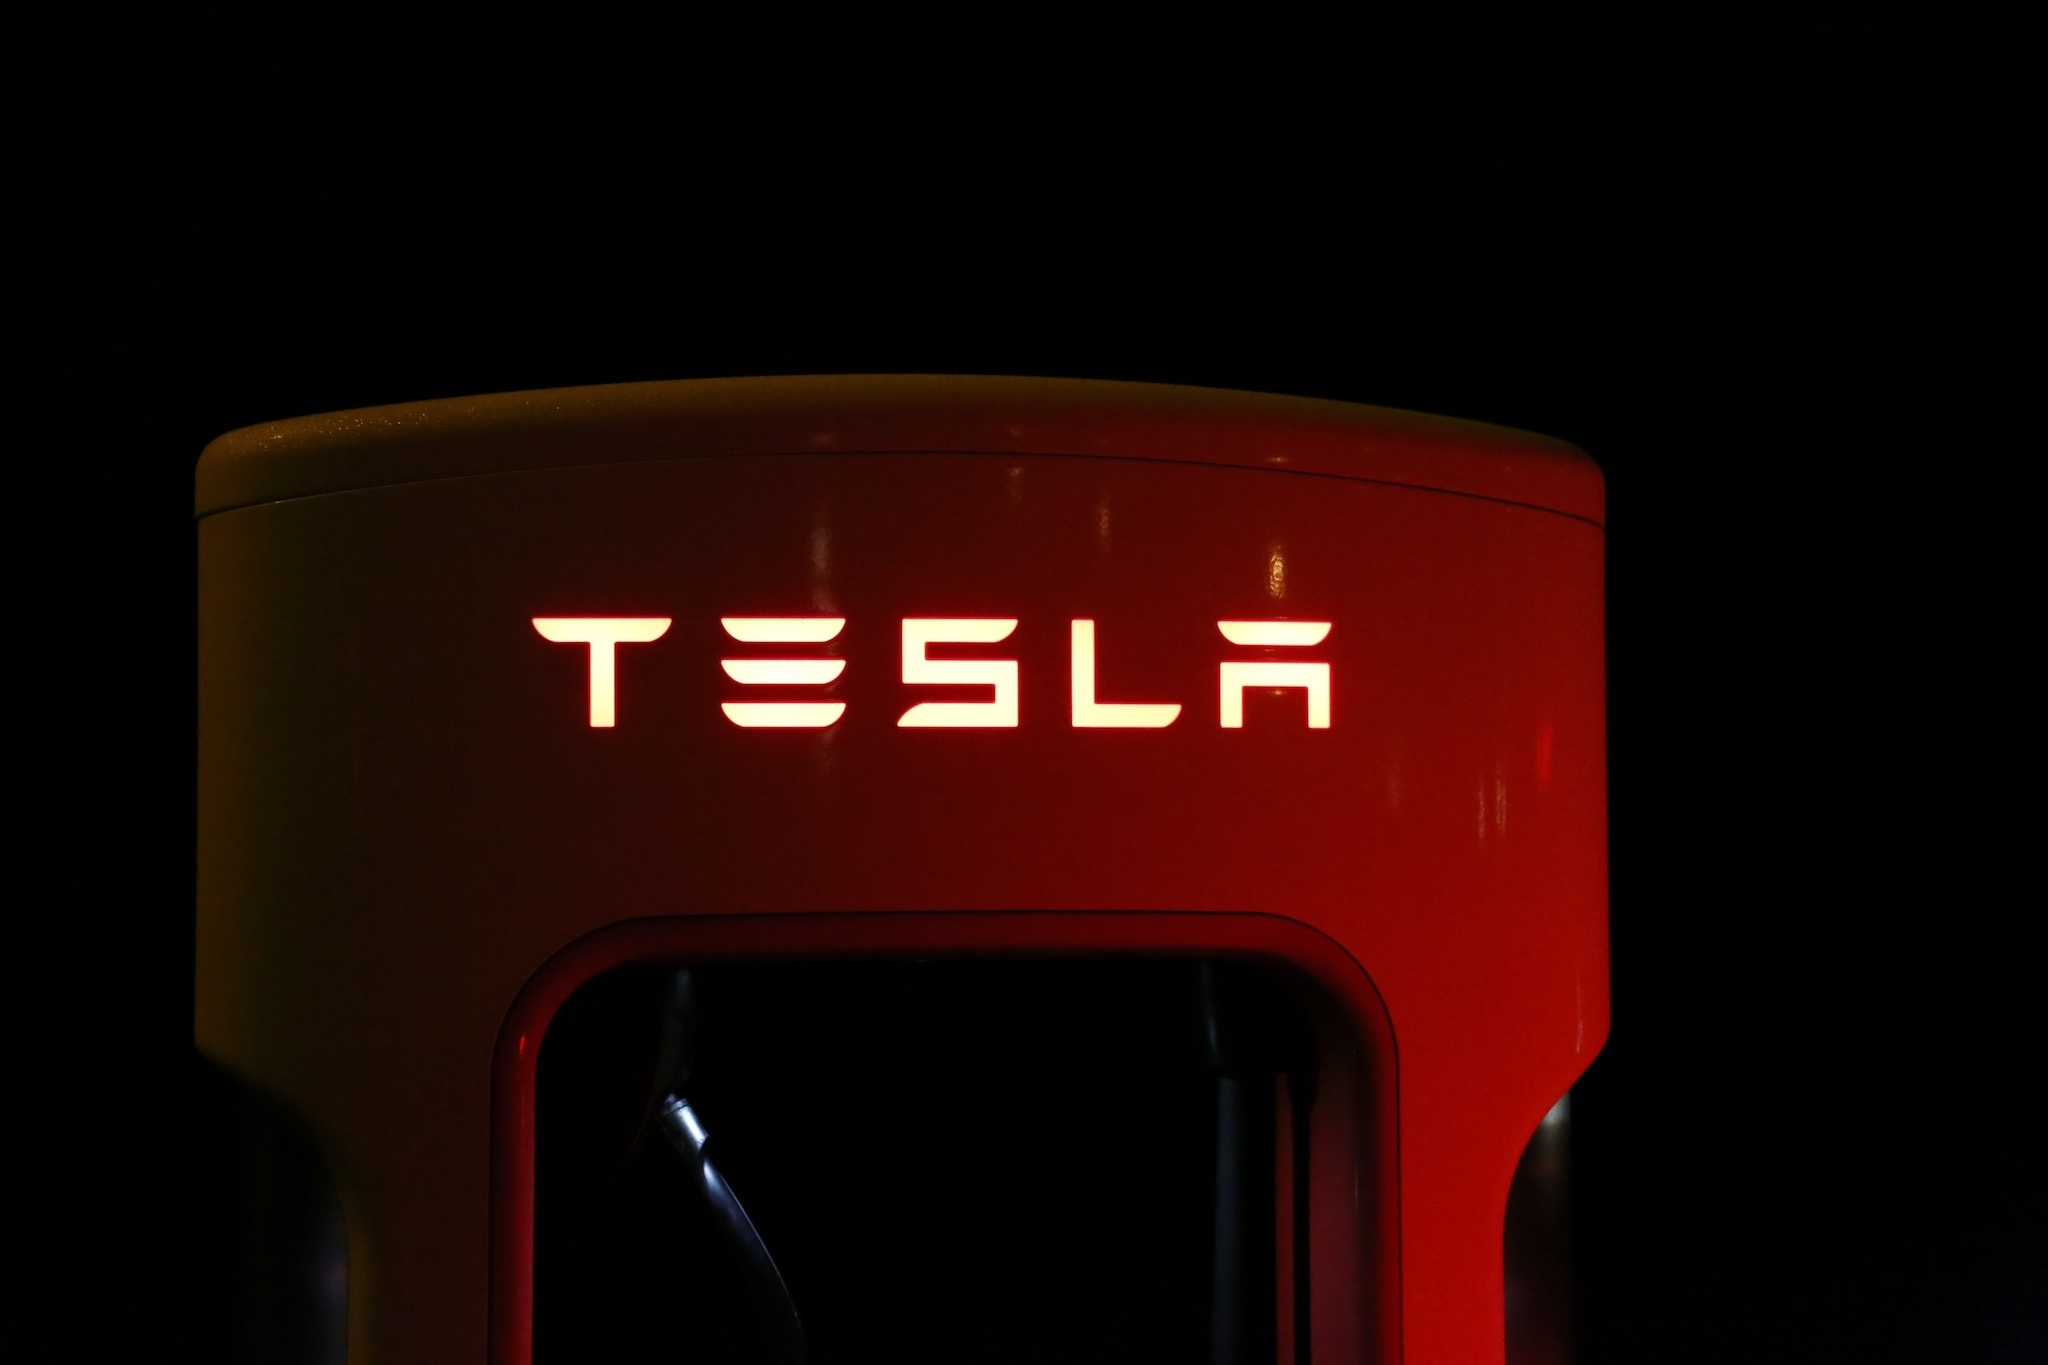 Electrify America Will Deploy Tesla Battery Packs to Store Energy at Charging Stations